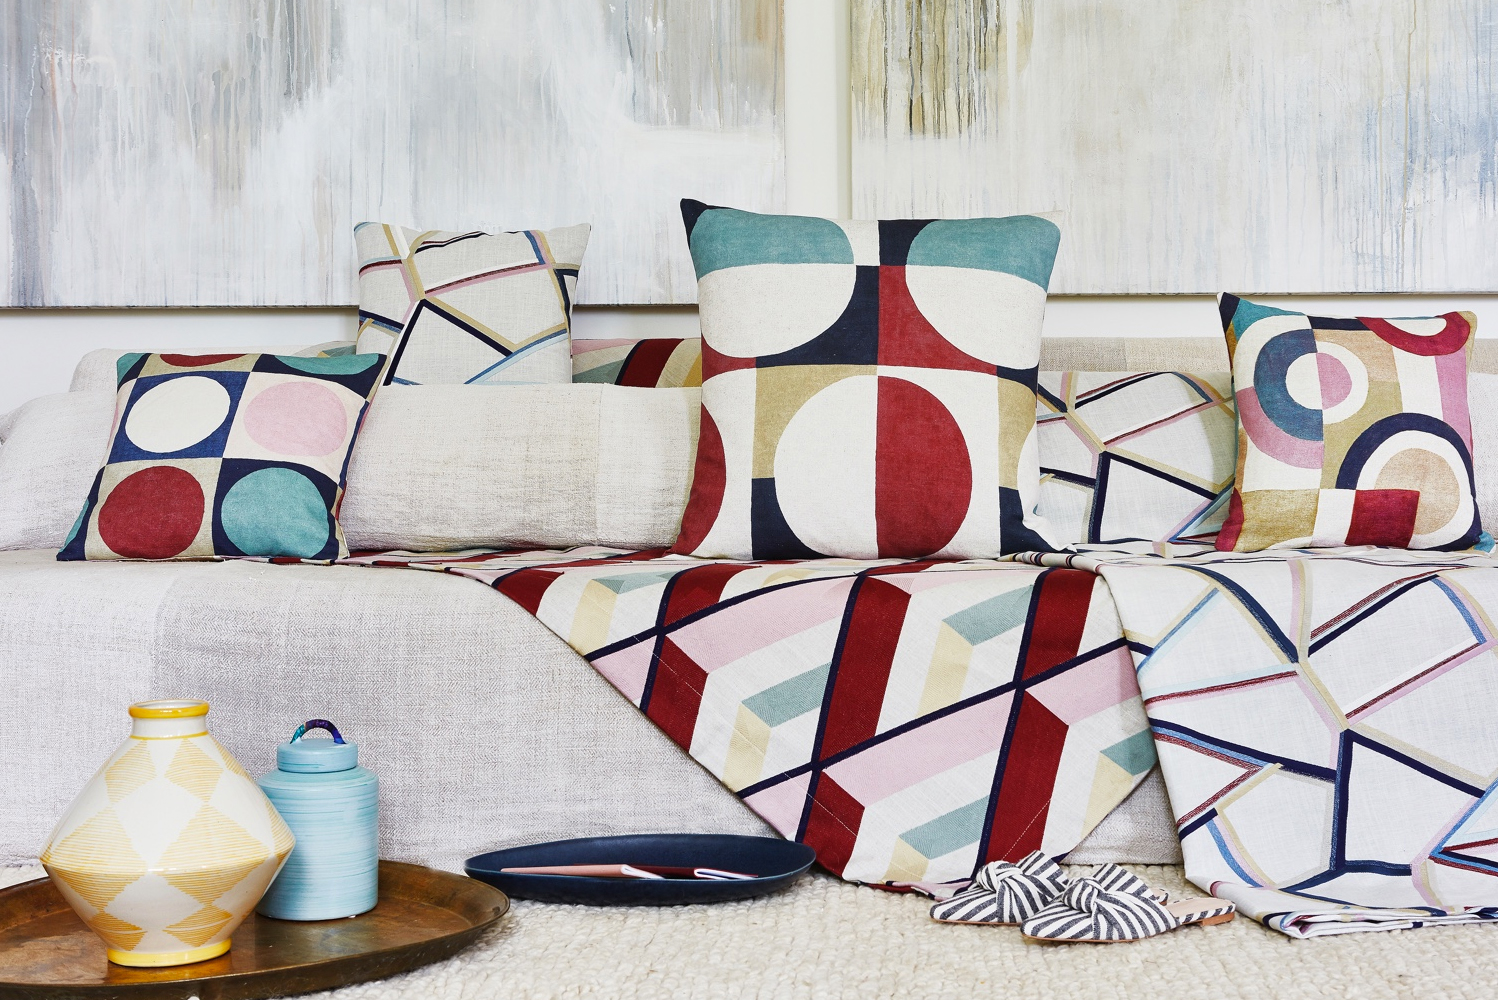 The Abstract collection reimagines Bauhaus prints that were popular during the 1970s to create seven complementary designs.